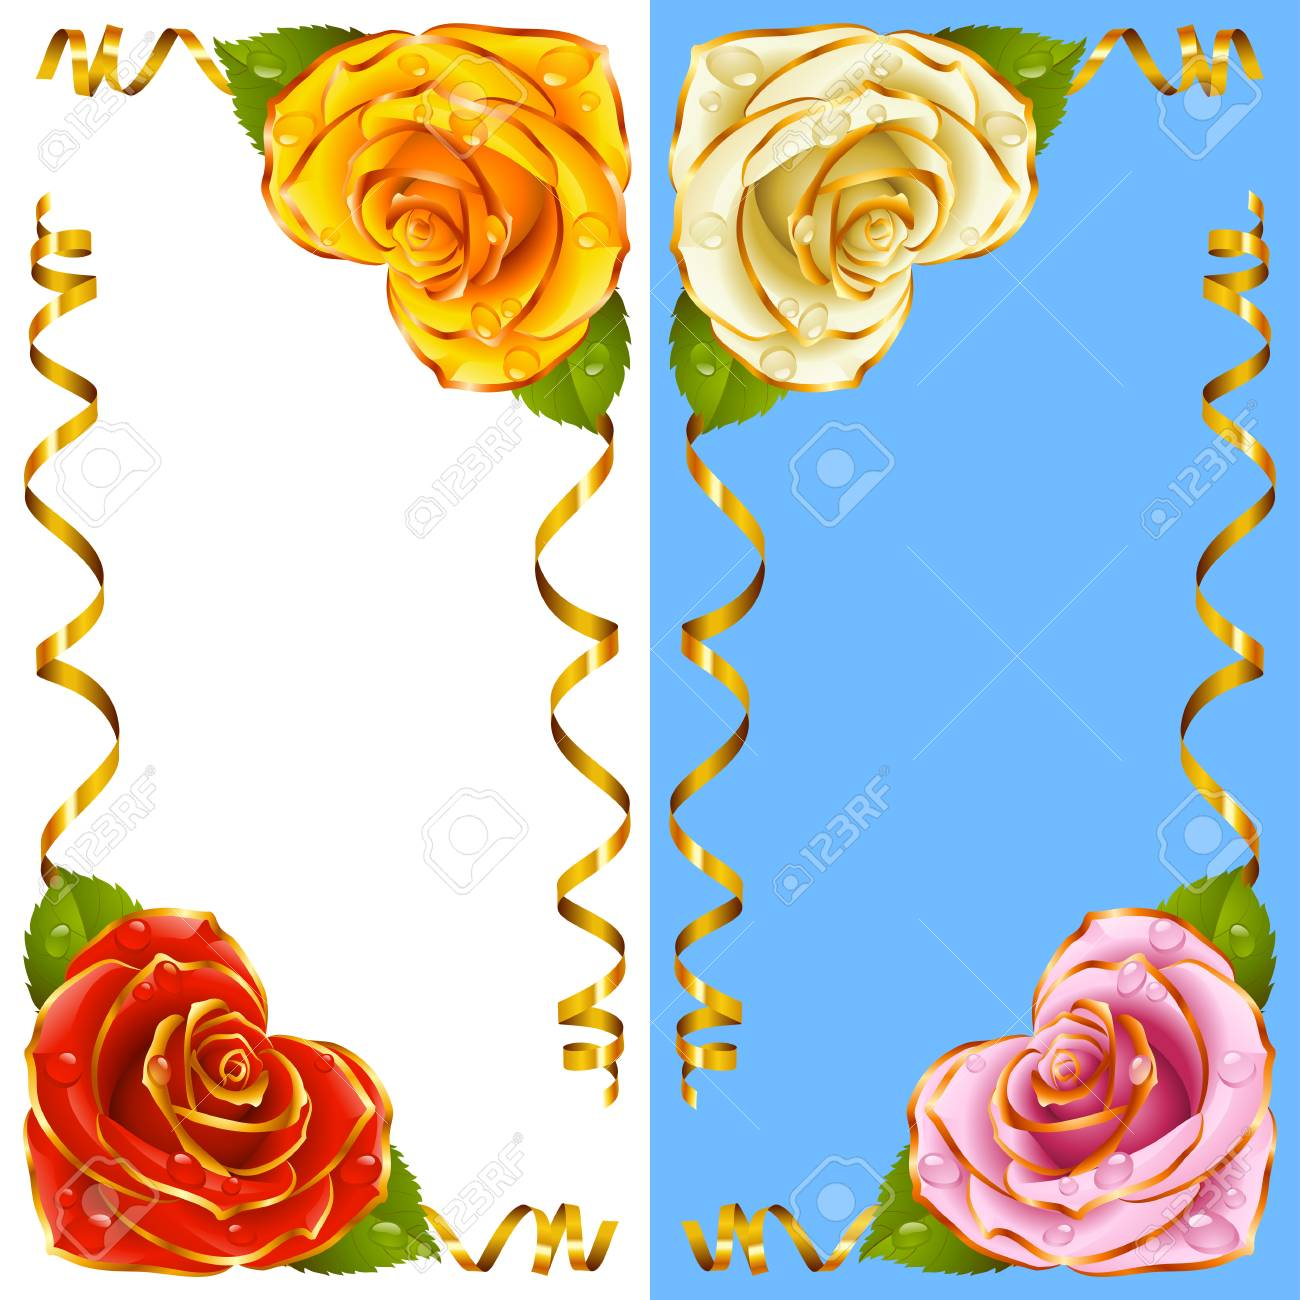 a1e59ce07b62 Corner Vignette Set From The Rose Heart And Swirl Ribbons. Red ...